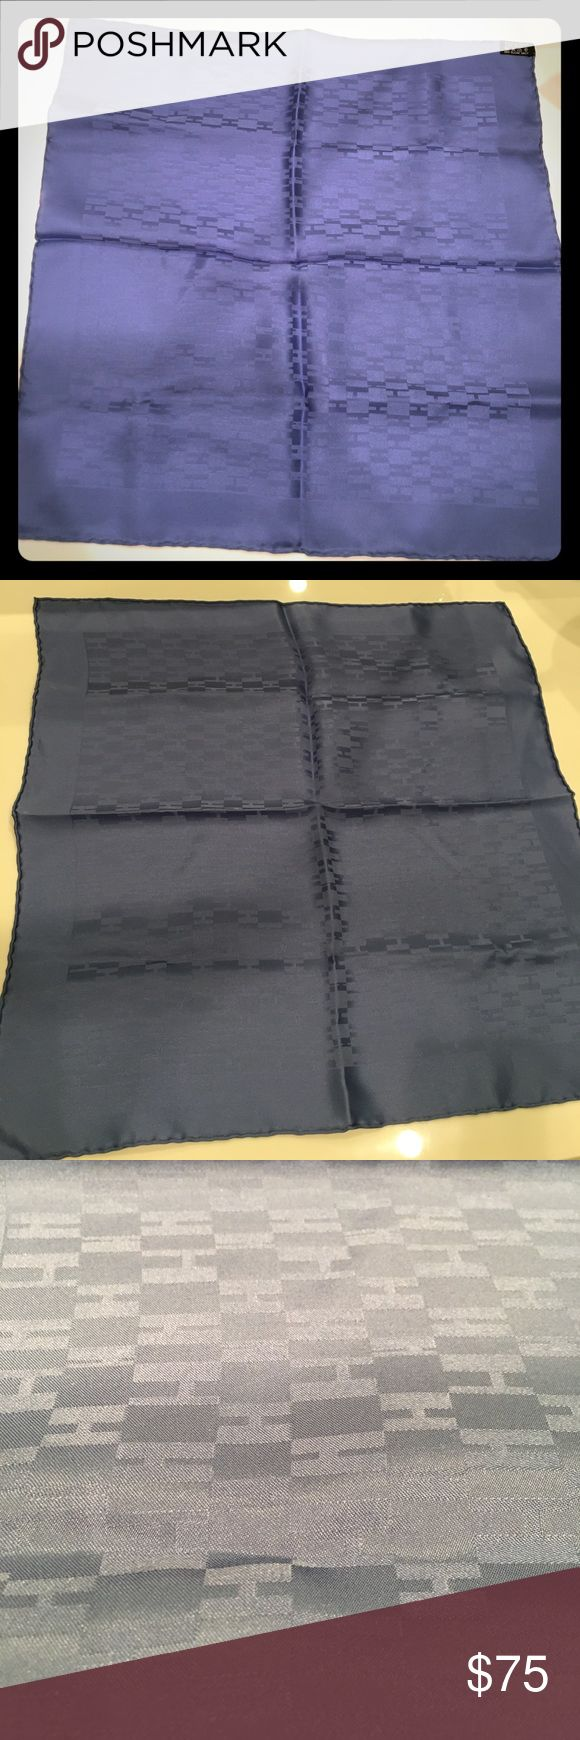 New Hermes Silk Pocket Square New without tag or box. Never been worn. Beautiful blueish gray color with Hermes H pattern. 100% silk, authentic. Must have piece! Perfect gift. Hermes Accessories Pocket Squares